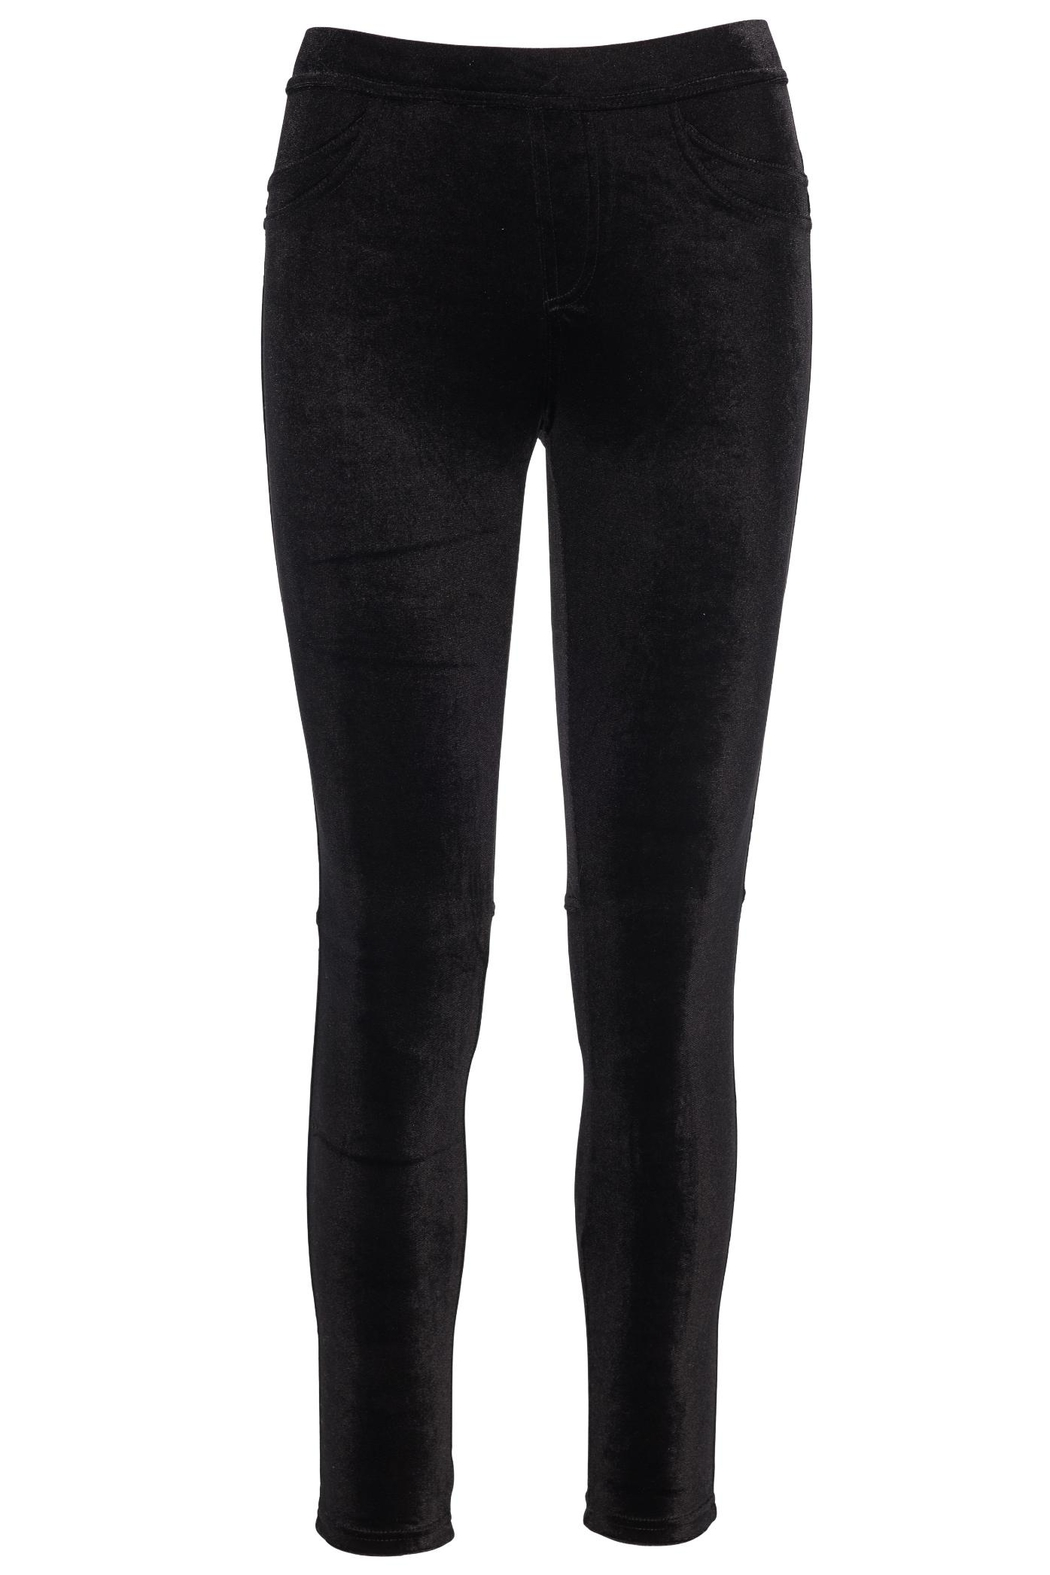 Sanctuary Velvet Grease Legging - Front Full Image